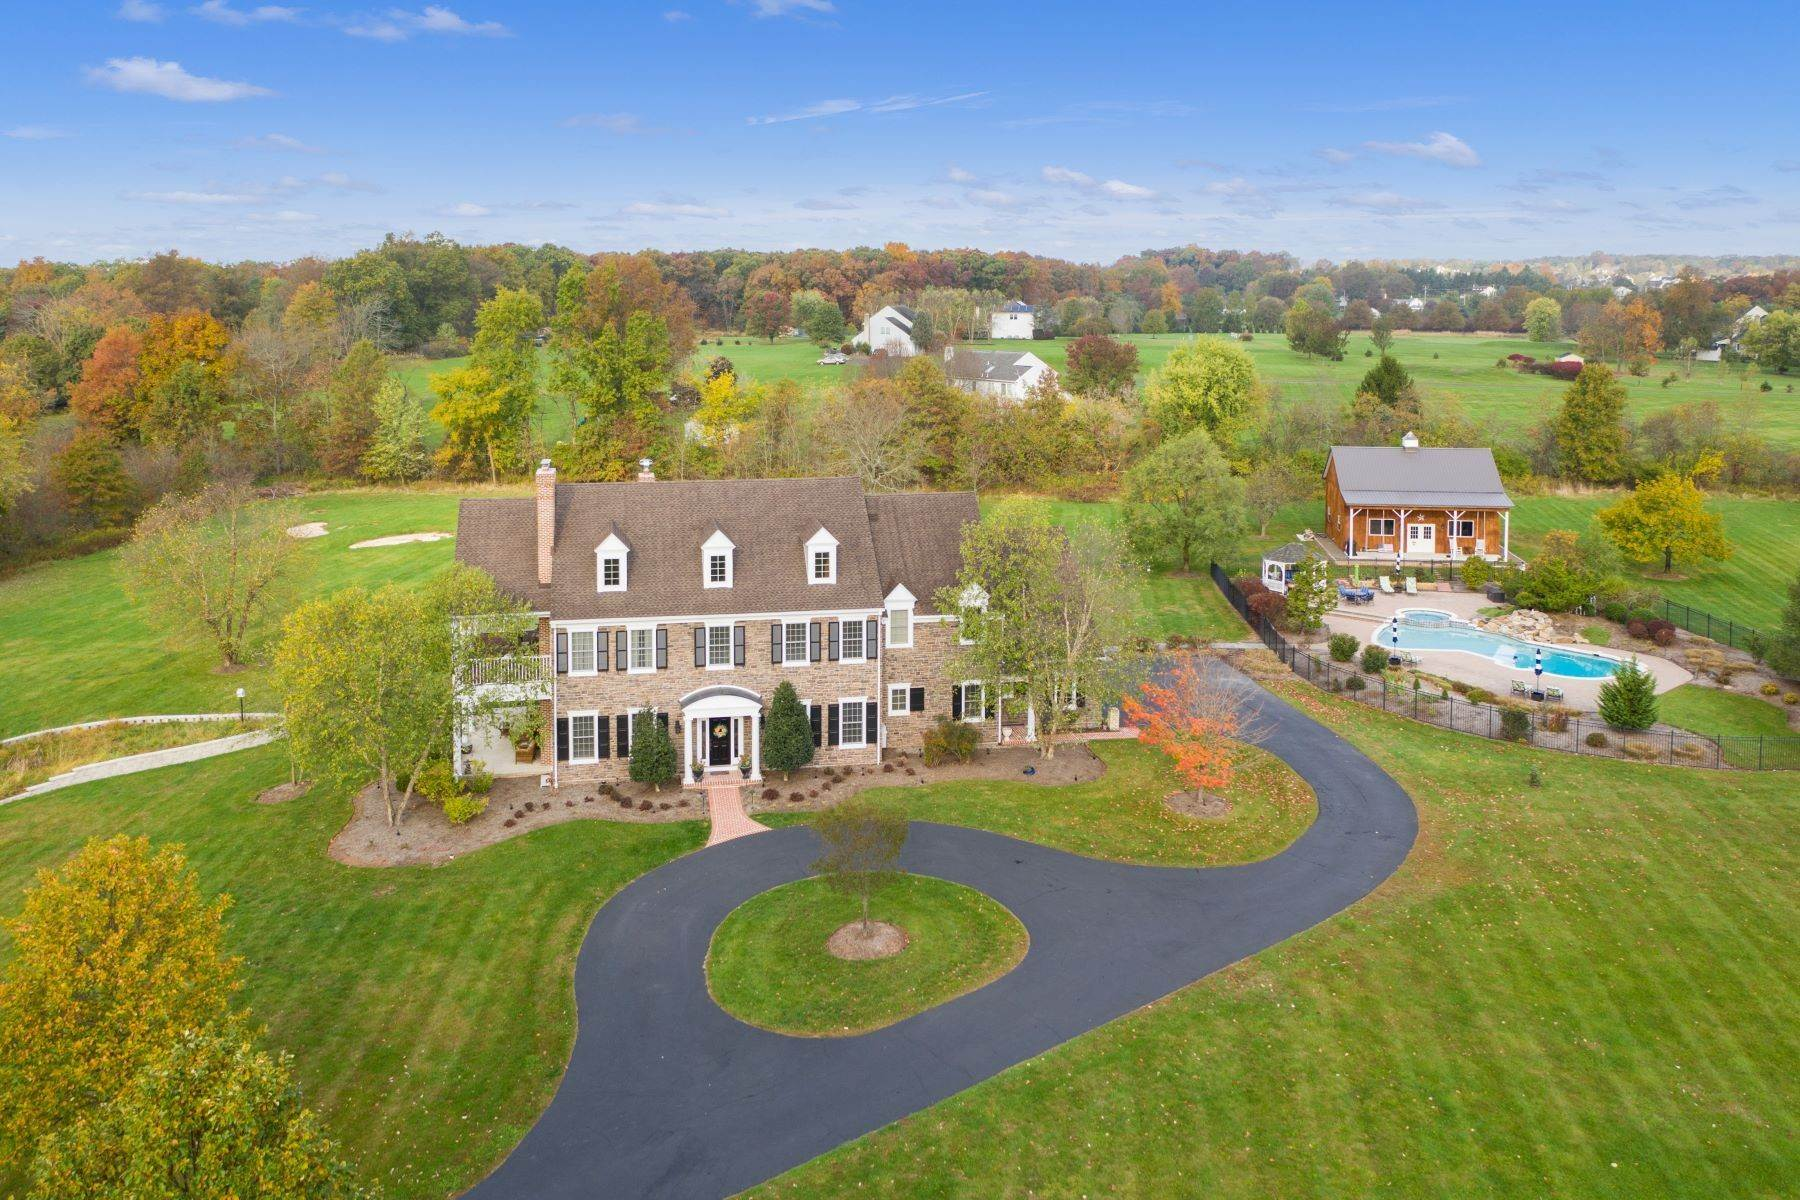 Property for Sale at 651 CRESSMAN RD Harleysville, Pennsylvania 19438 United States